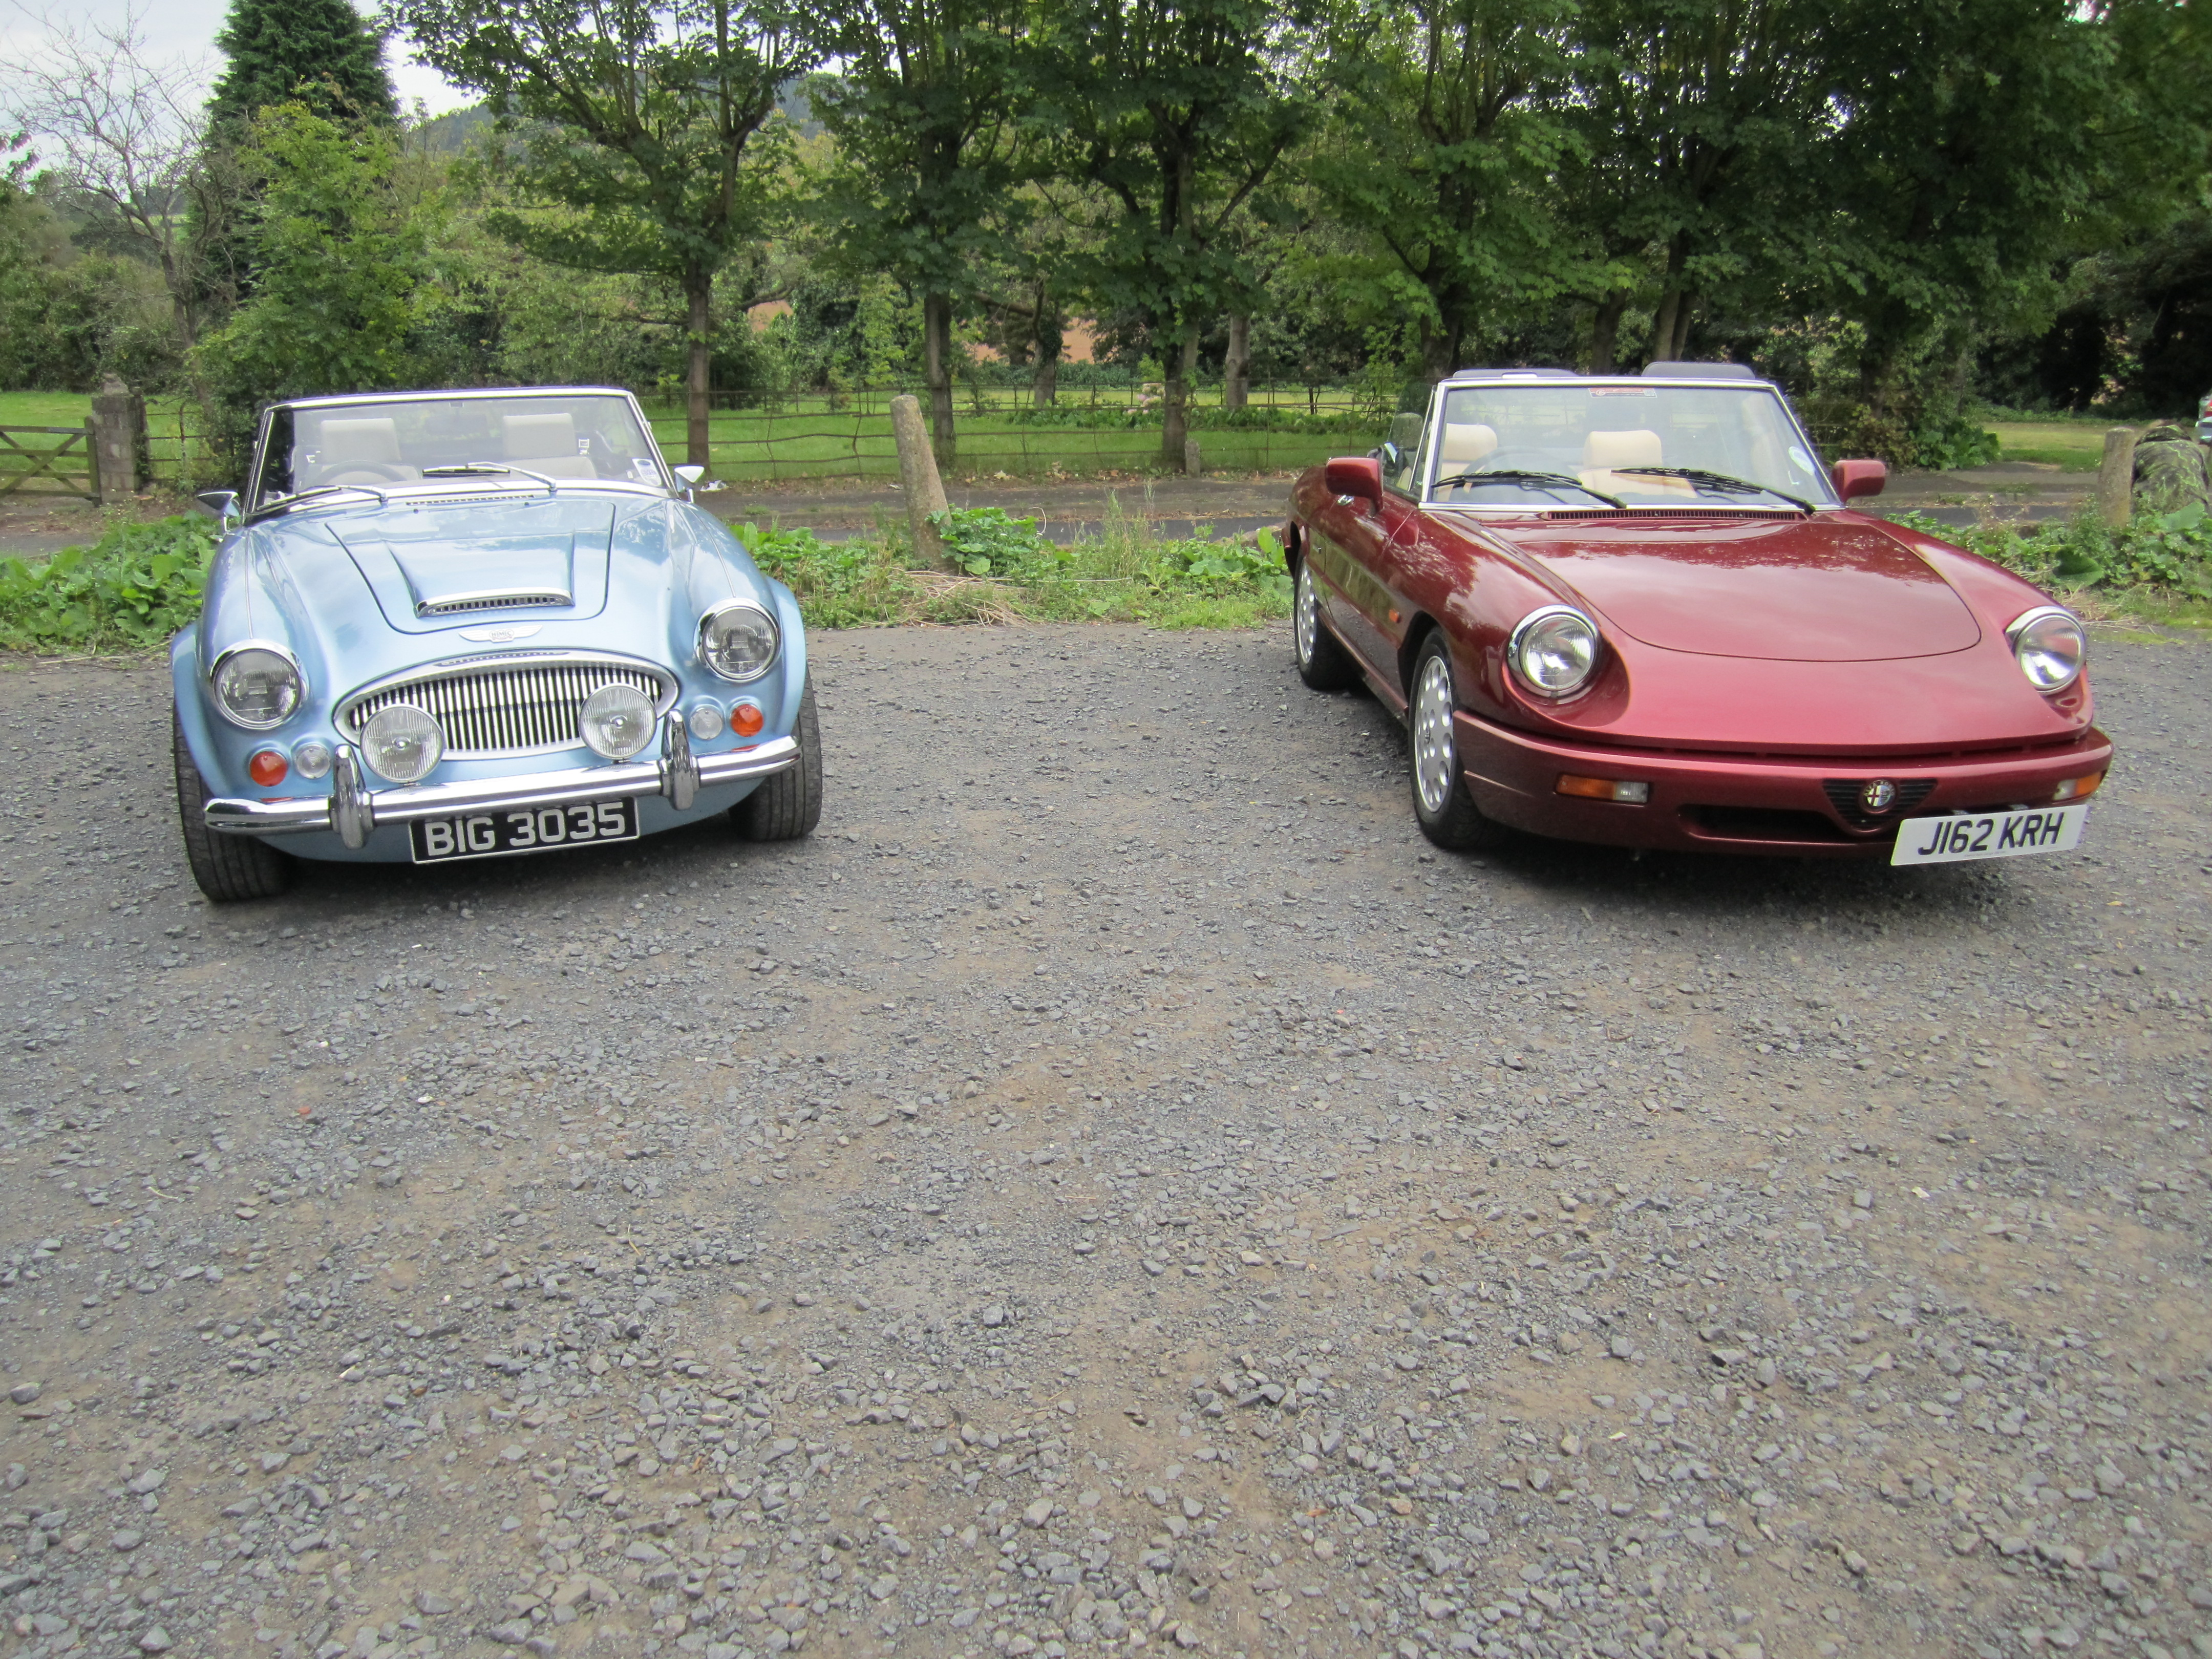 Rent or Buy - Finding the Right Convertible 4U - ClassicCarsDriven.com